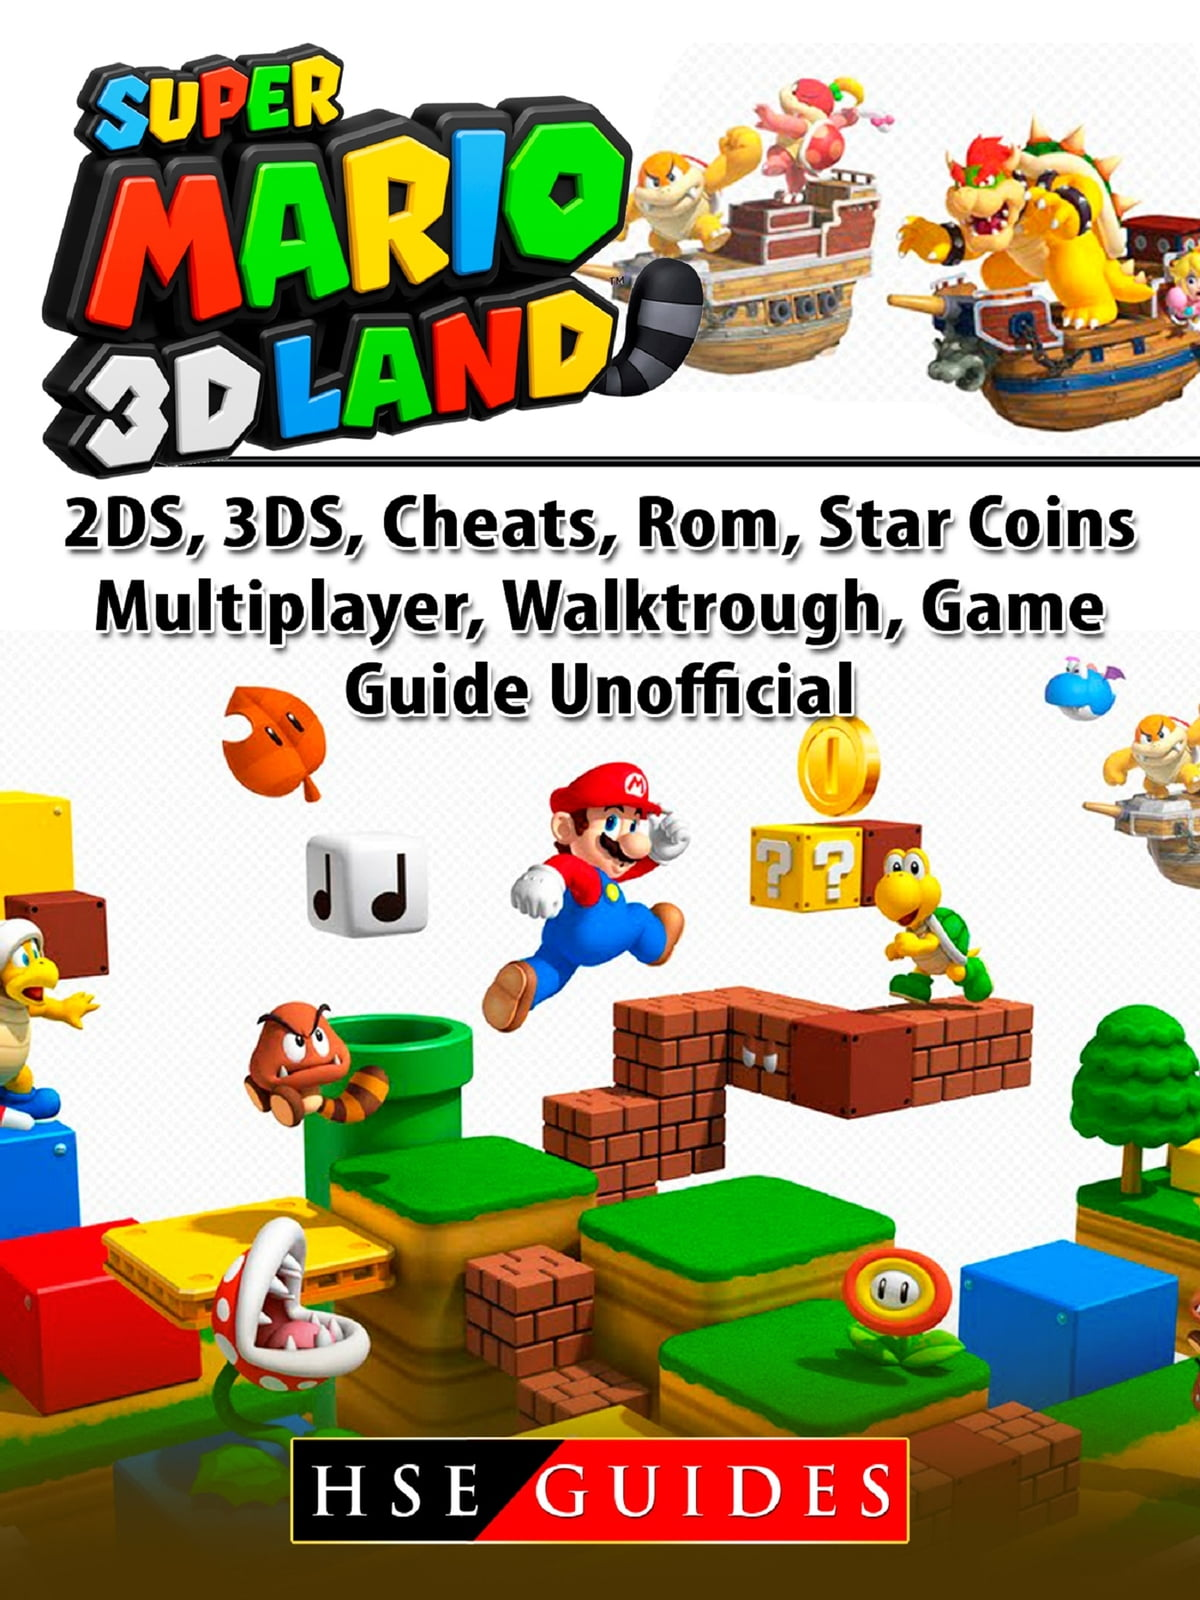 Super Mario 3D Land, 2DS, 3DS, Cheats, Rom, Star Coins, Multiplayer,  Walktrough, Game Guide Unofficial ebook by Hse Guides - Rakuten Kobo